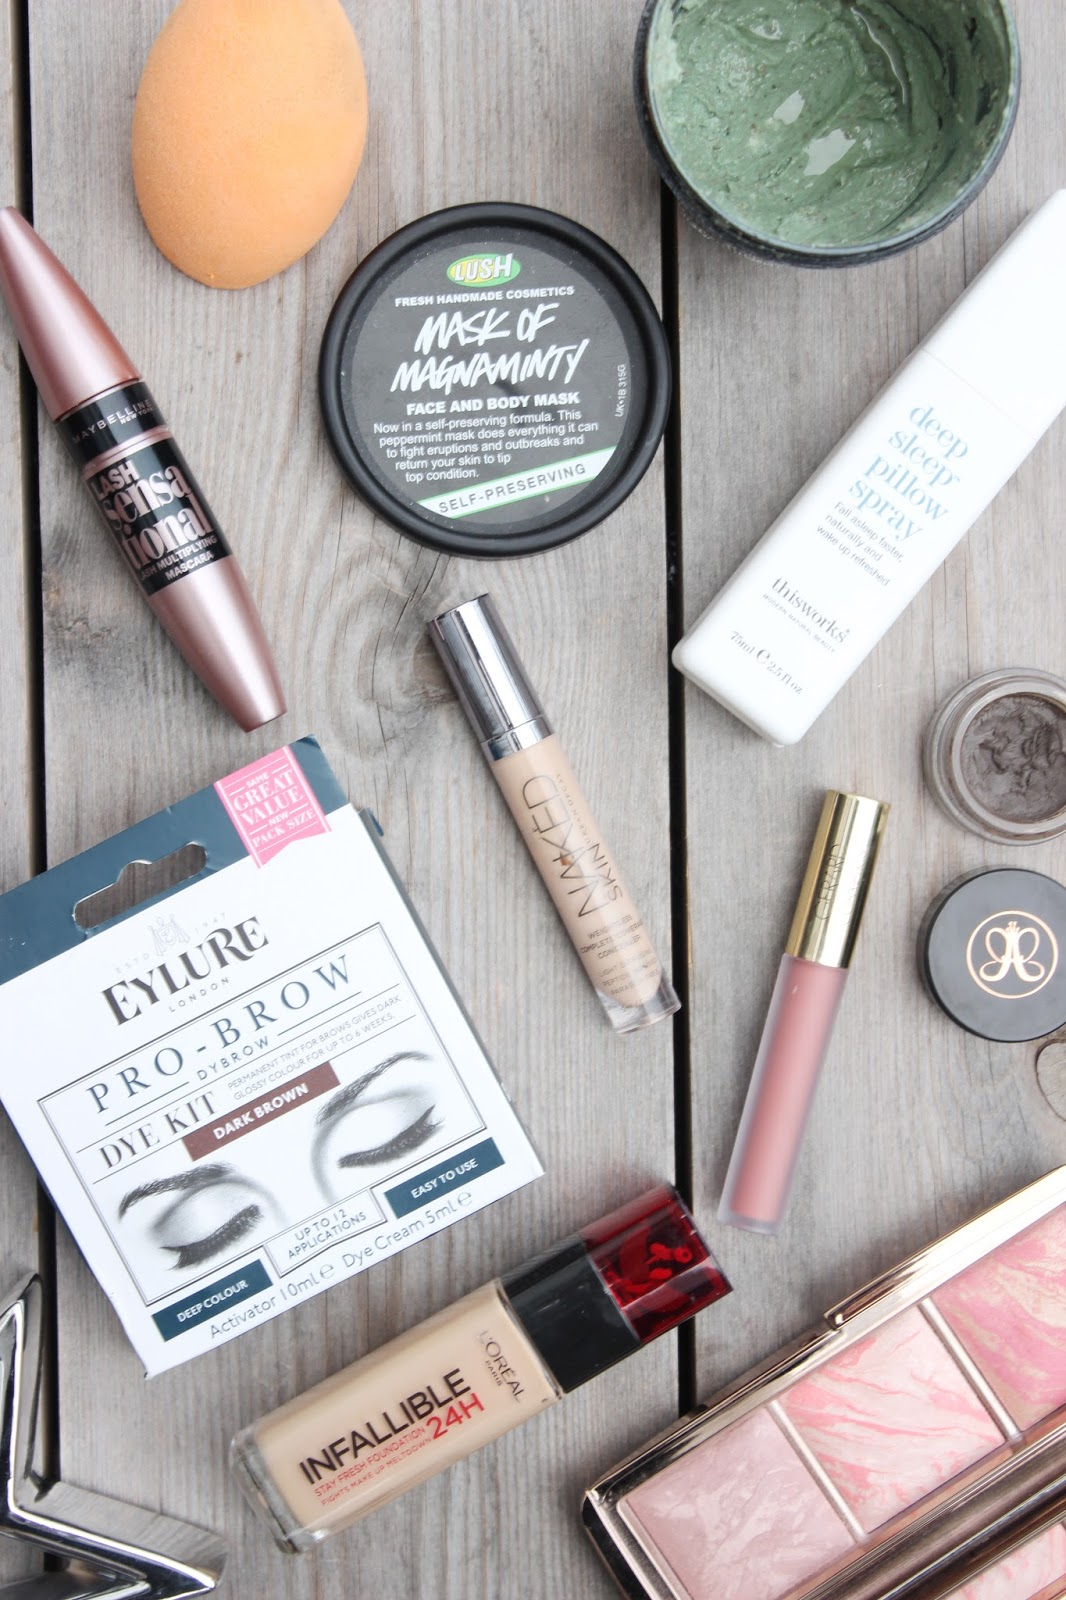 Top 10 Beauty Discoveries of 2015